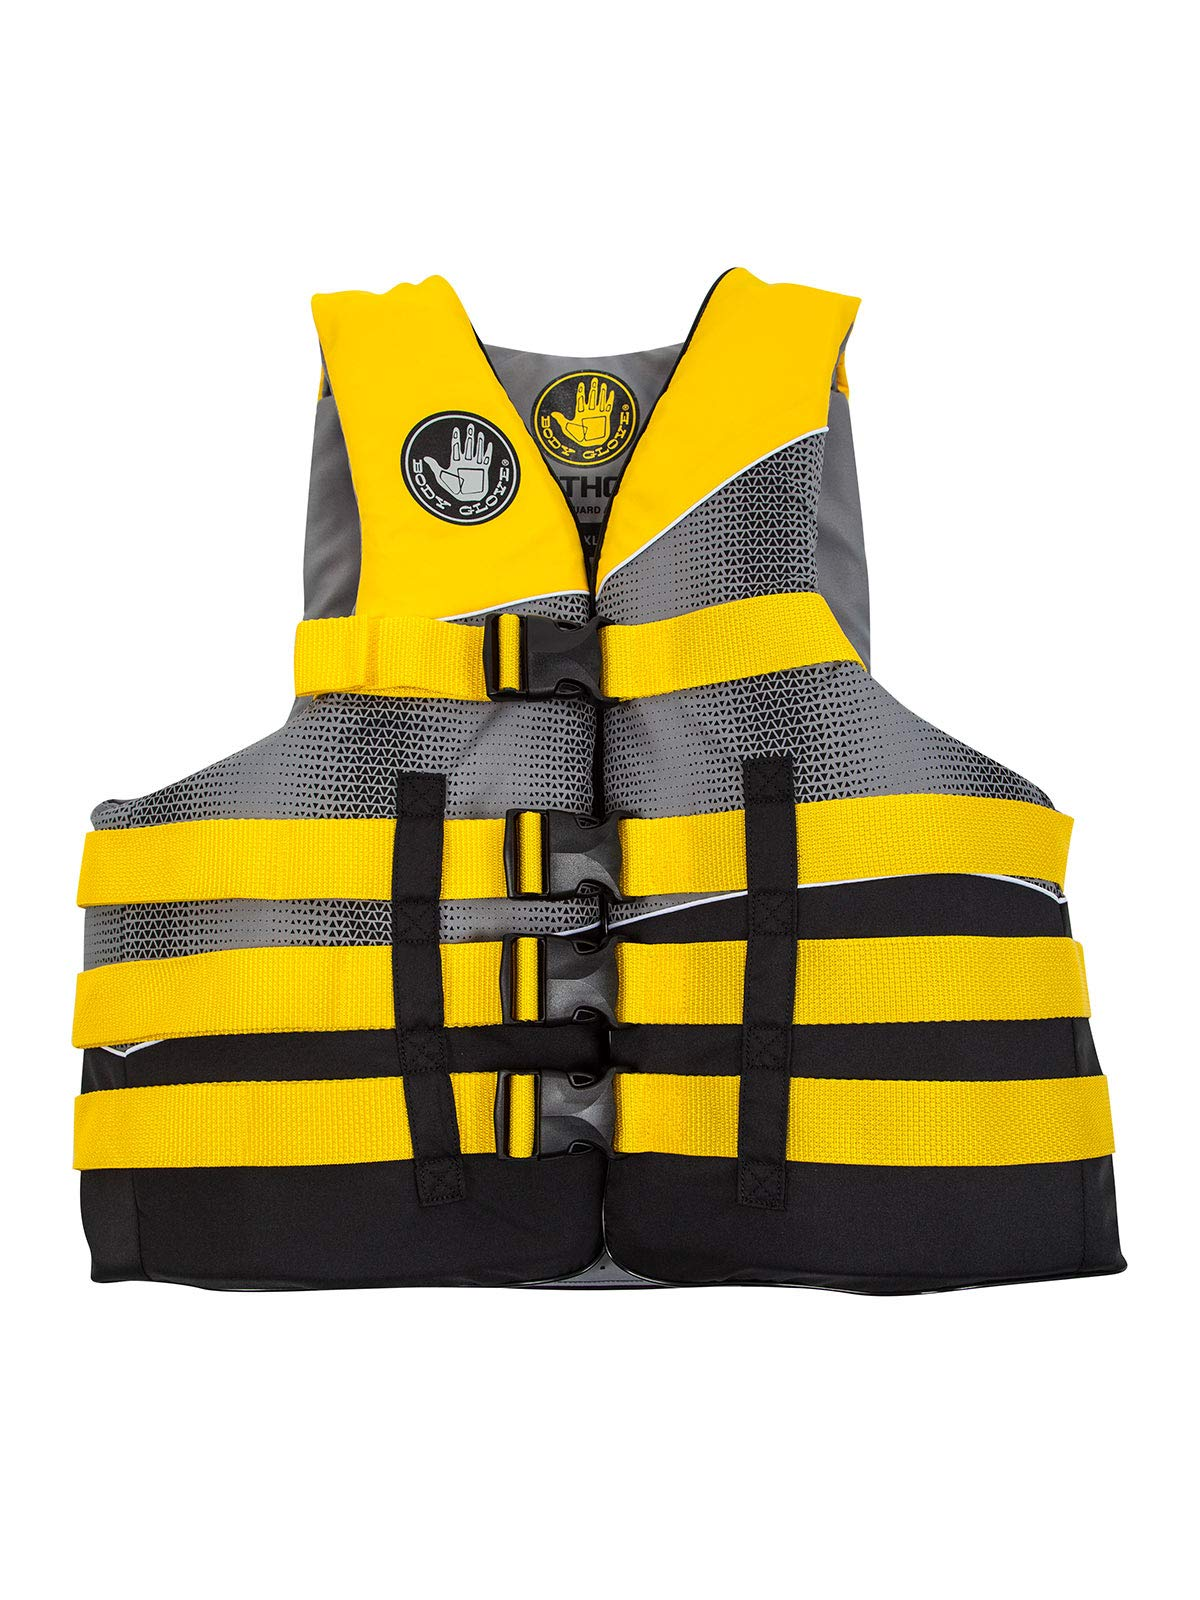 Body Glove Method USCG Approved Nylon Life Vest, X-Small, Black/Yellow/Silver/Grey